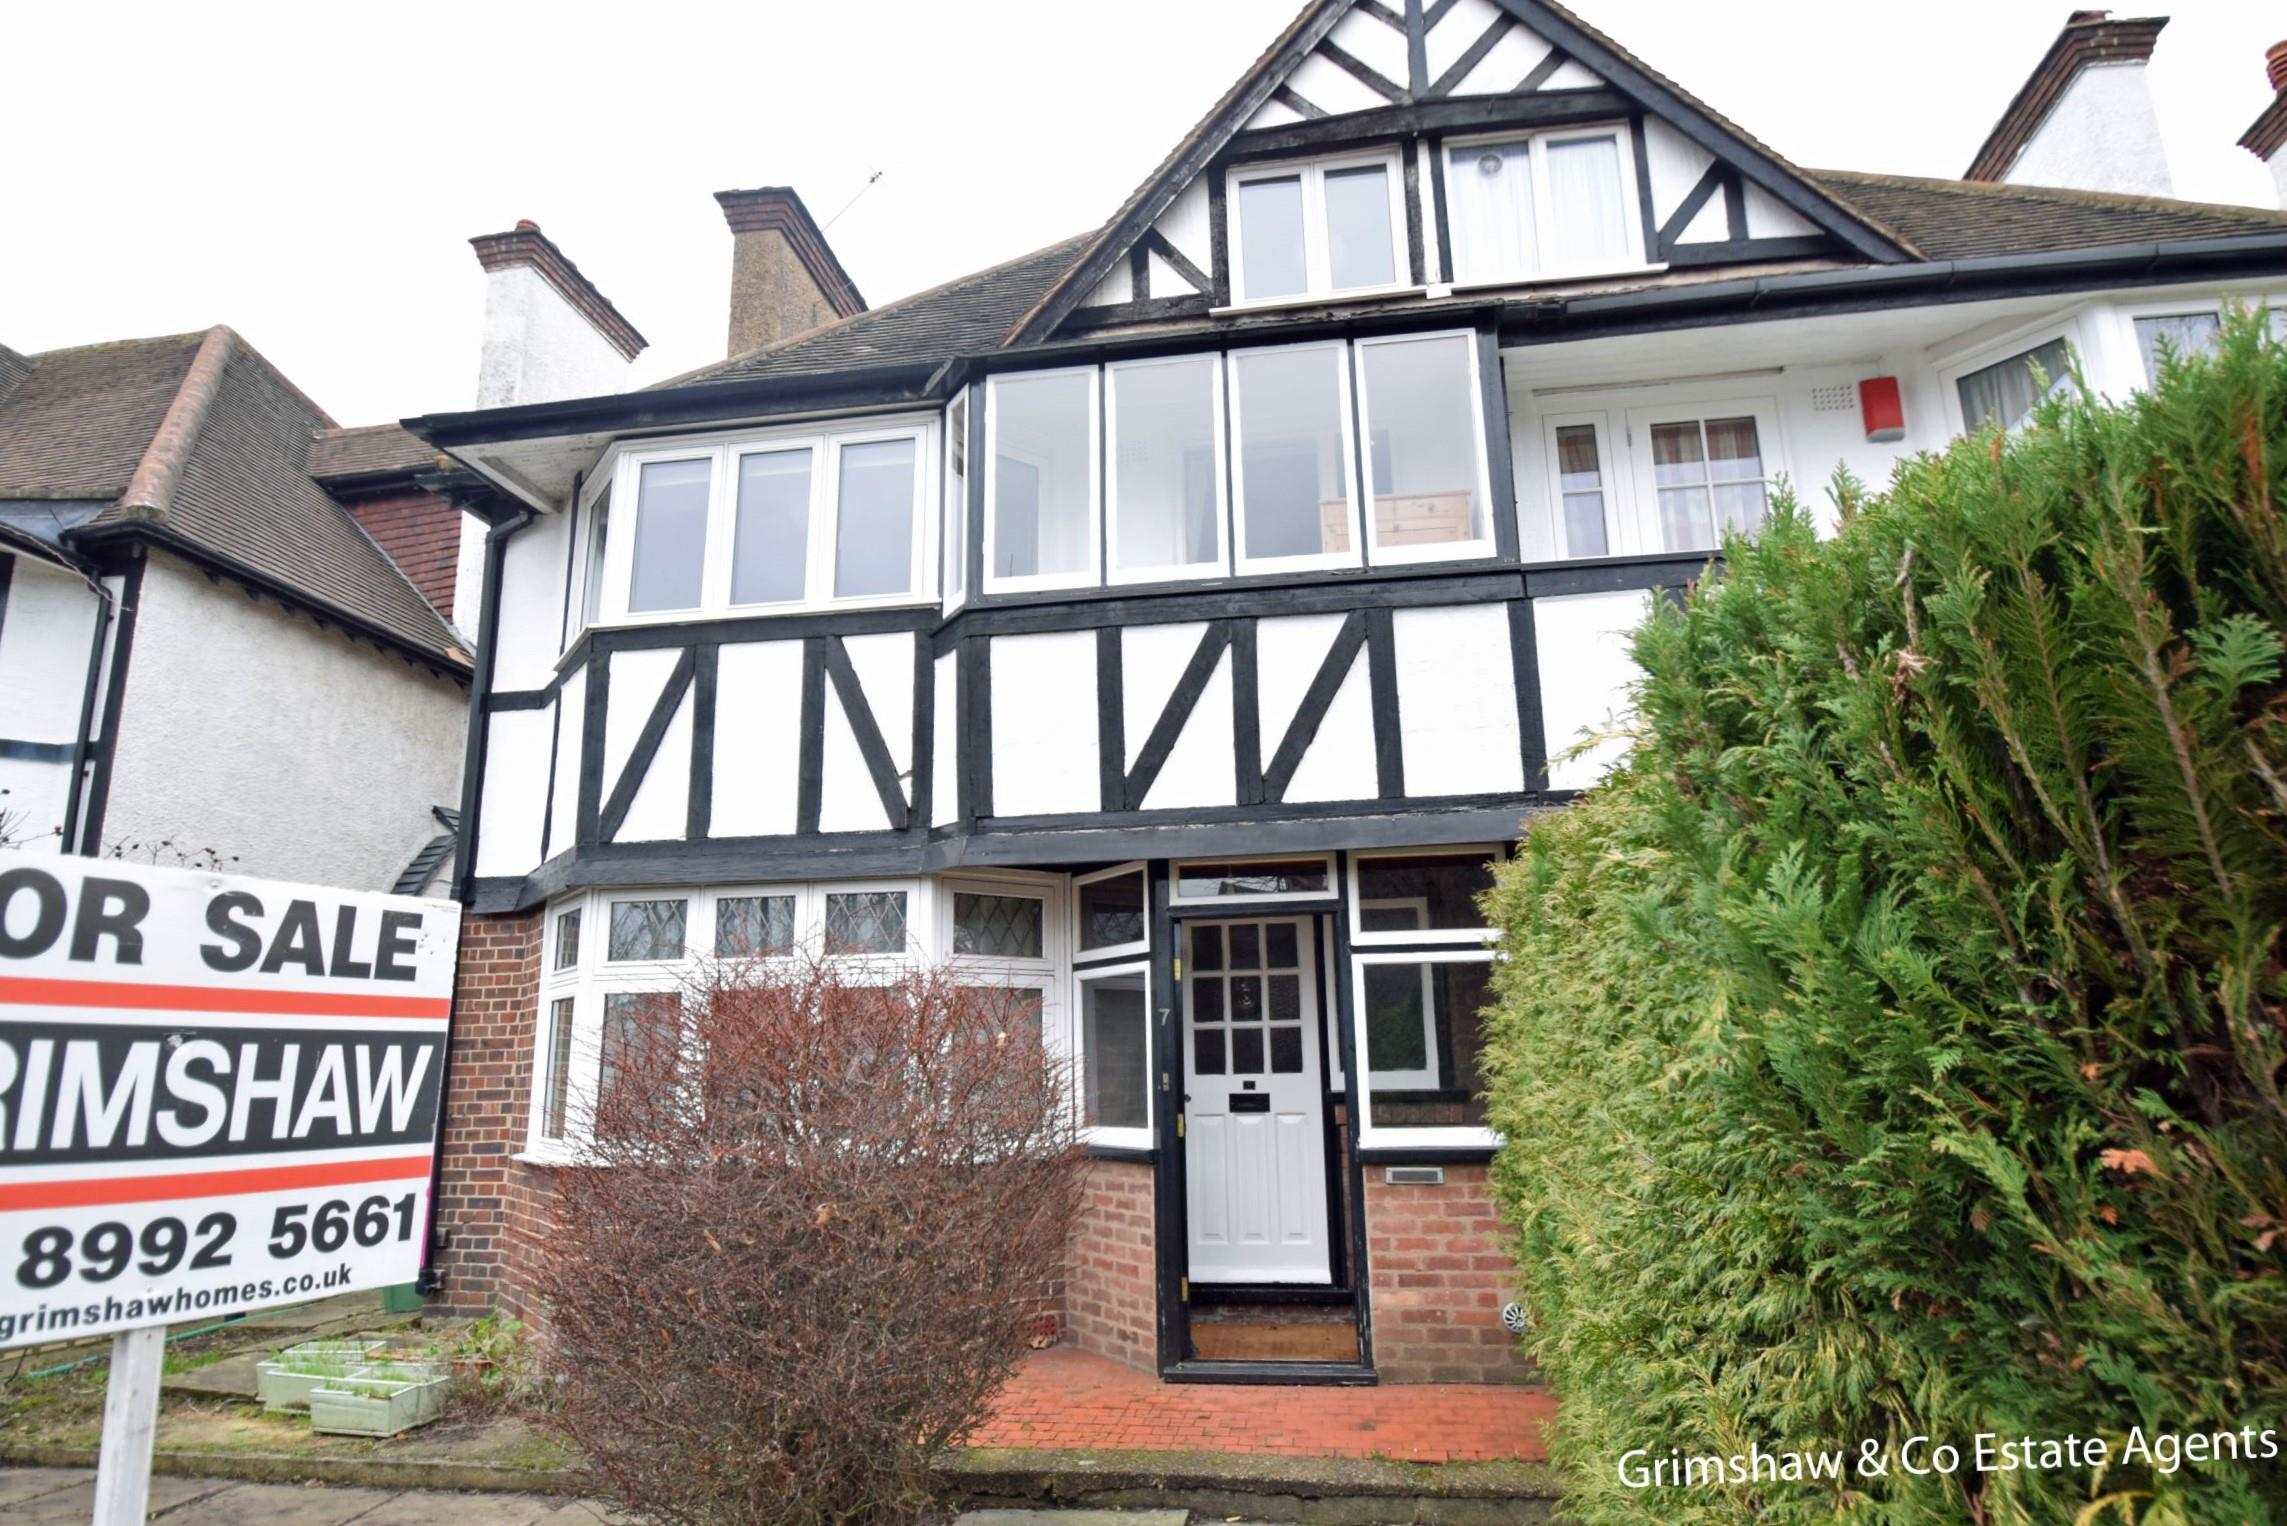 Sold - Hanger Hill Garden Estate, West Acton